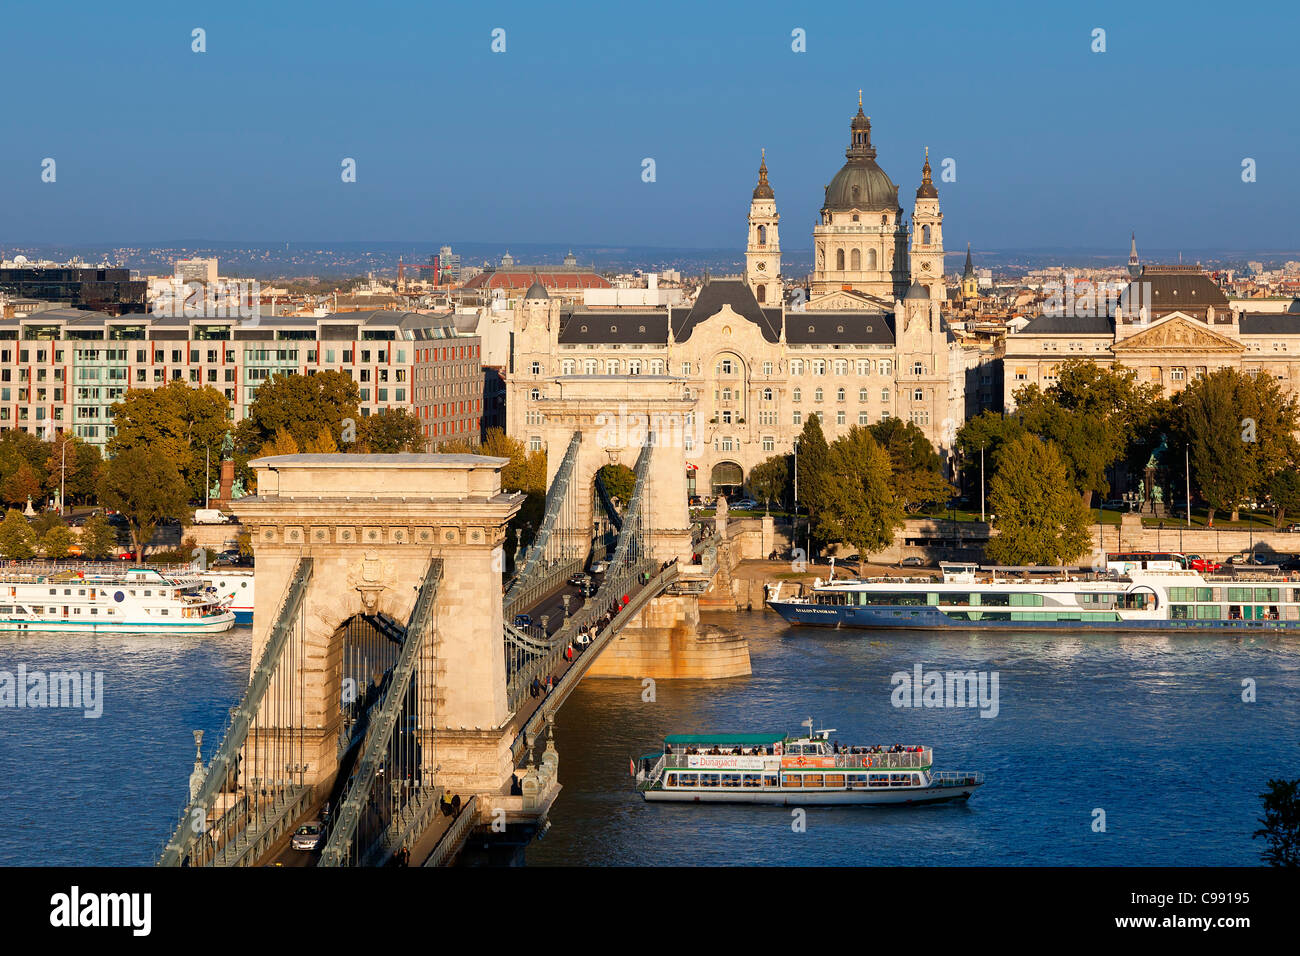 Budapest, Chain Bridge and St. Stephen s Basilica - Stock Image